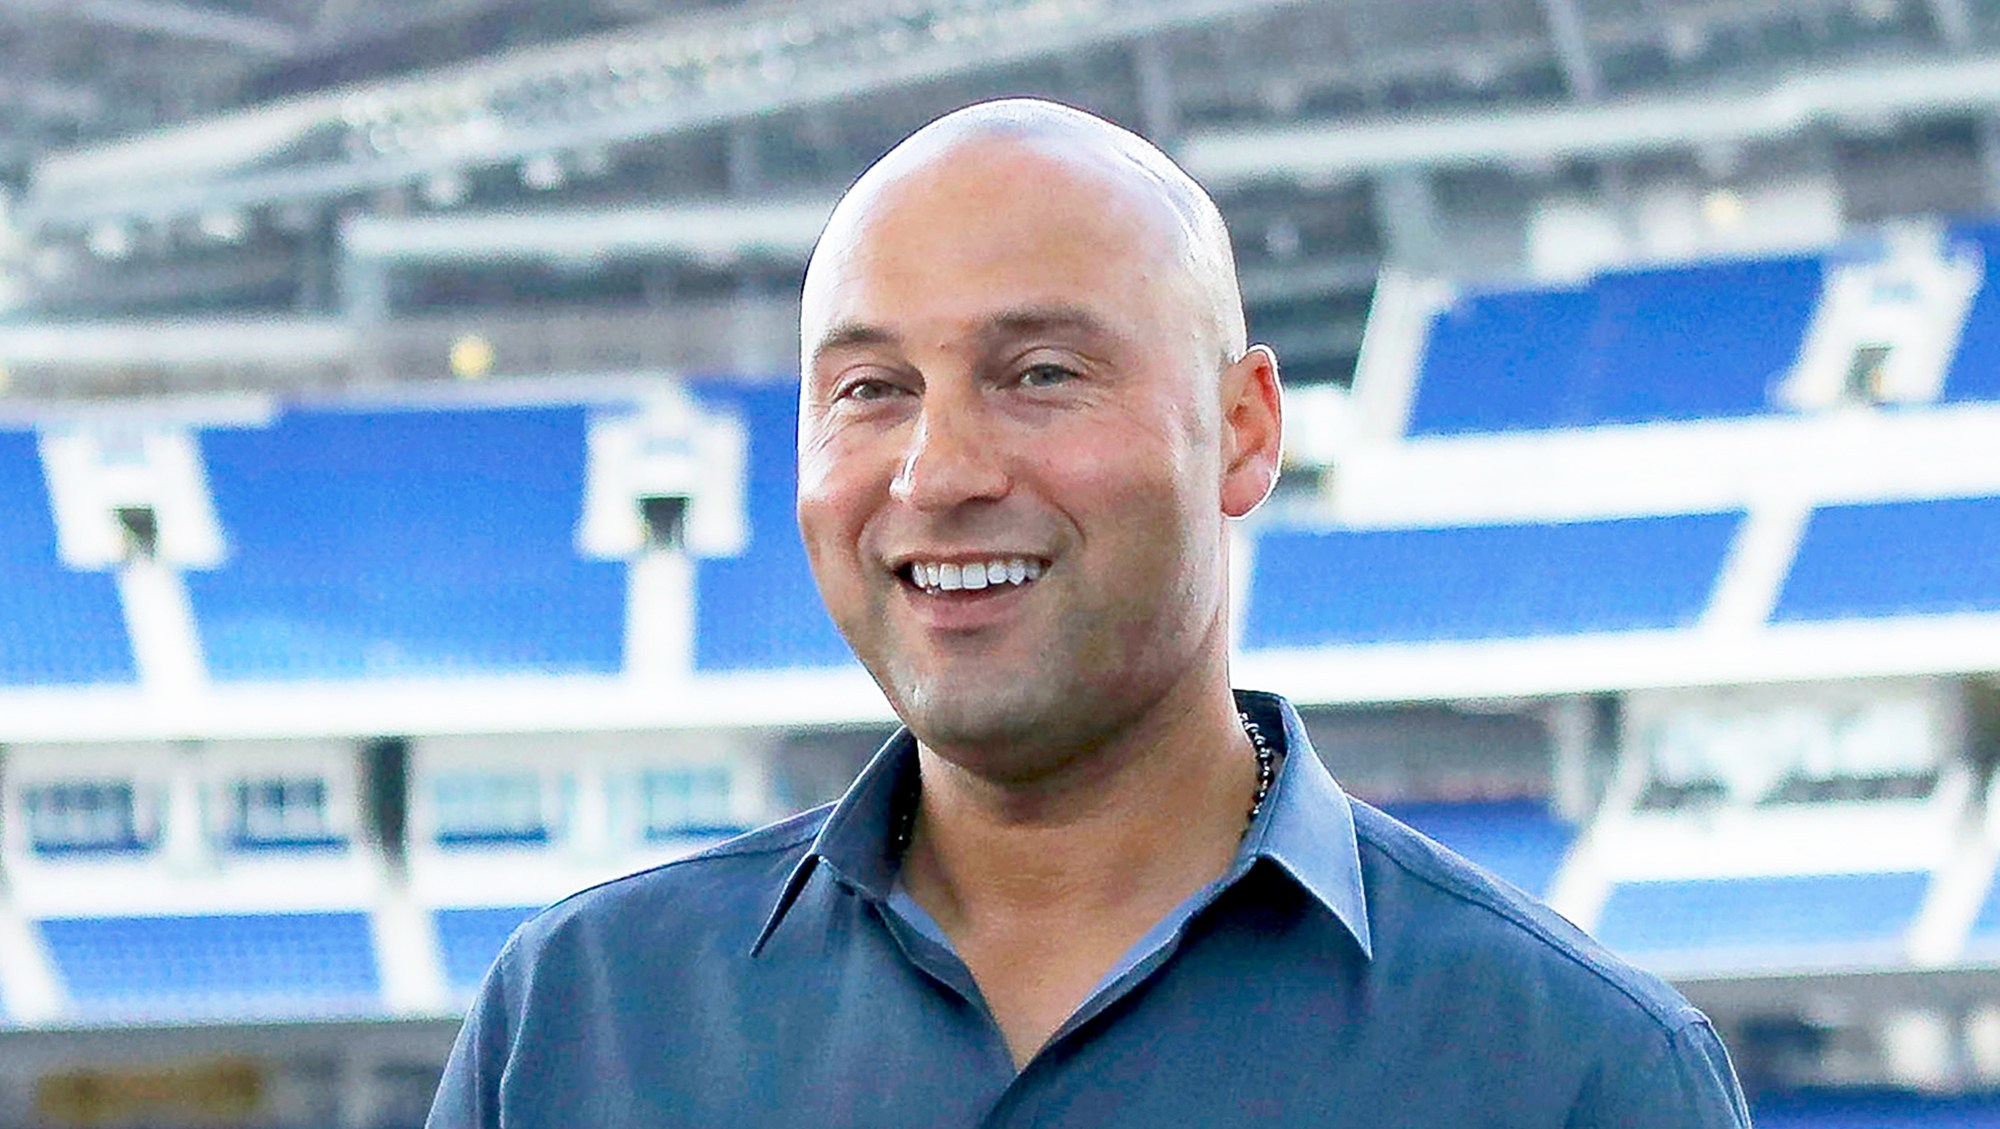 Derek Jeter attends a press conference at Marlins Park in Miami on February 13, 2018.